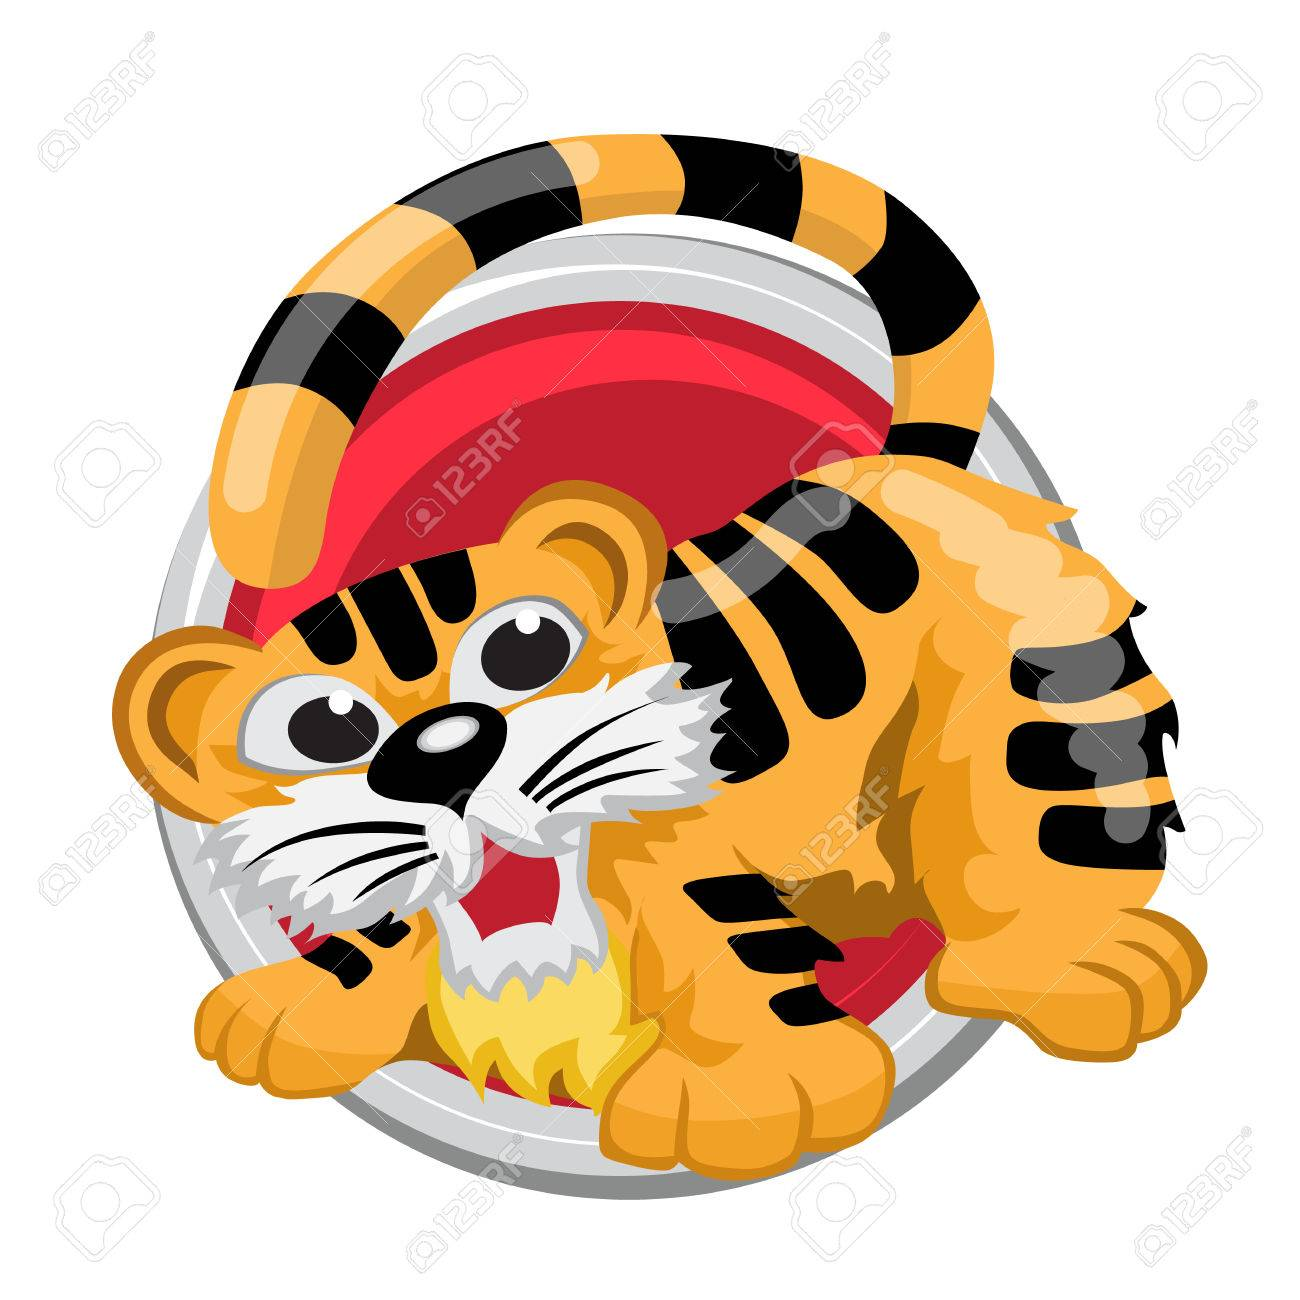 Tiger orient horoscope sign isolated in circle chinese symbols tiger orient horoscope sign isolated in circle chinese symbols zodiac banque d biocorpaavc Gallery